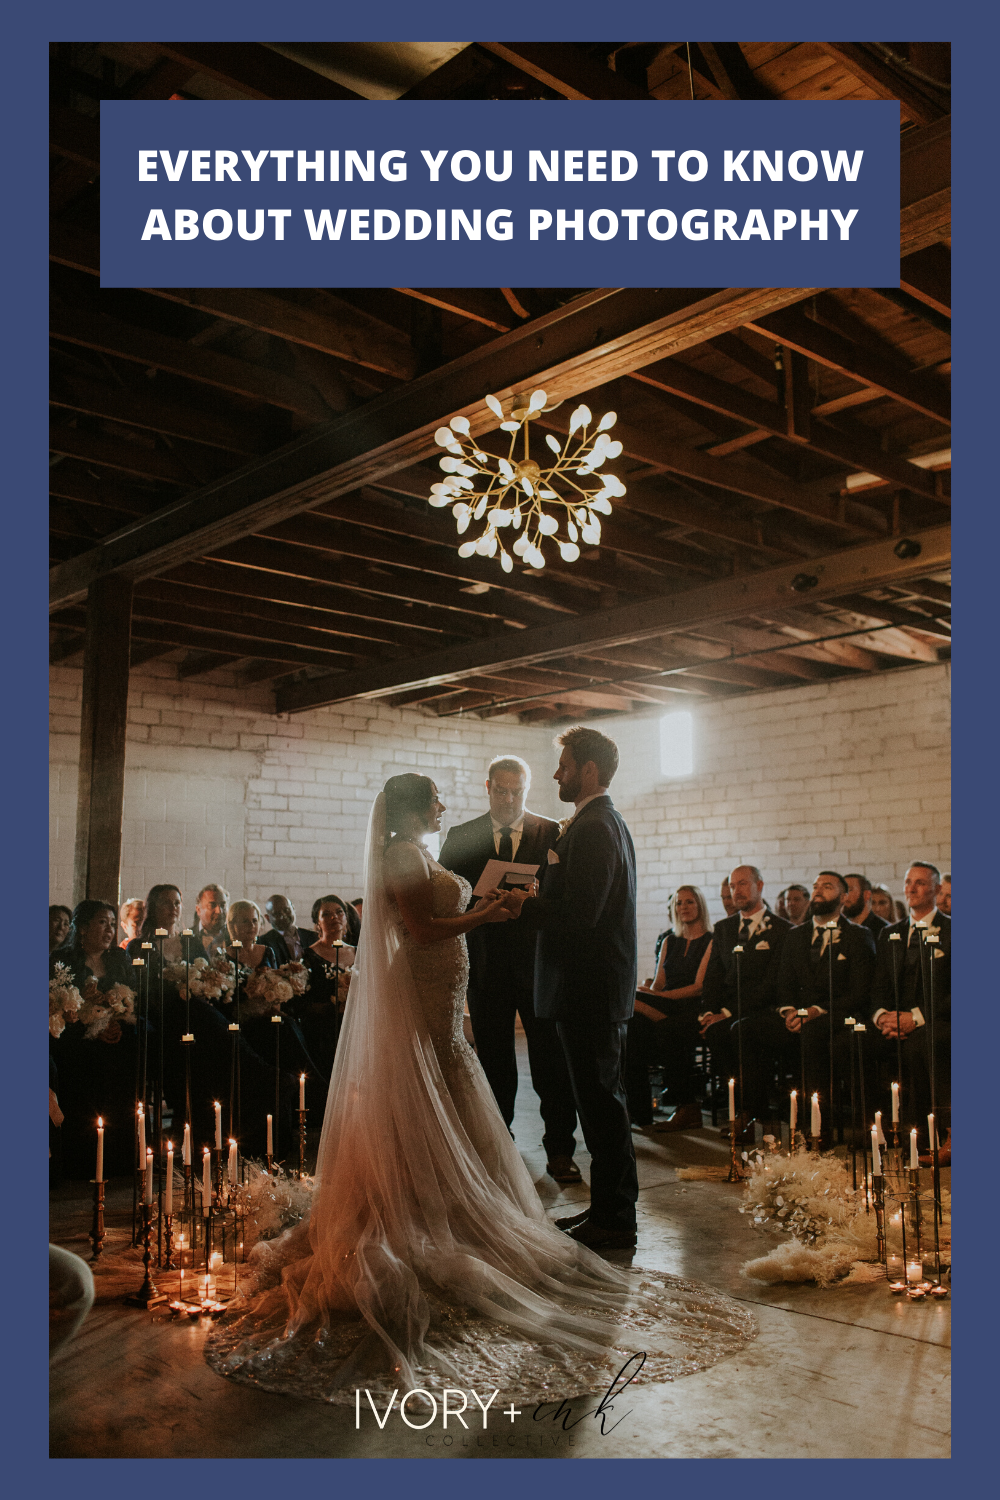 Everything You Need to Know About Wedding Photography